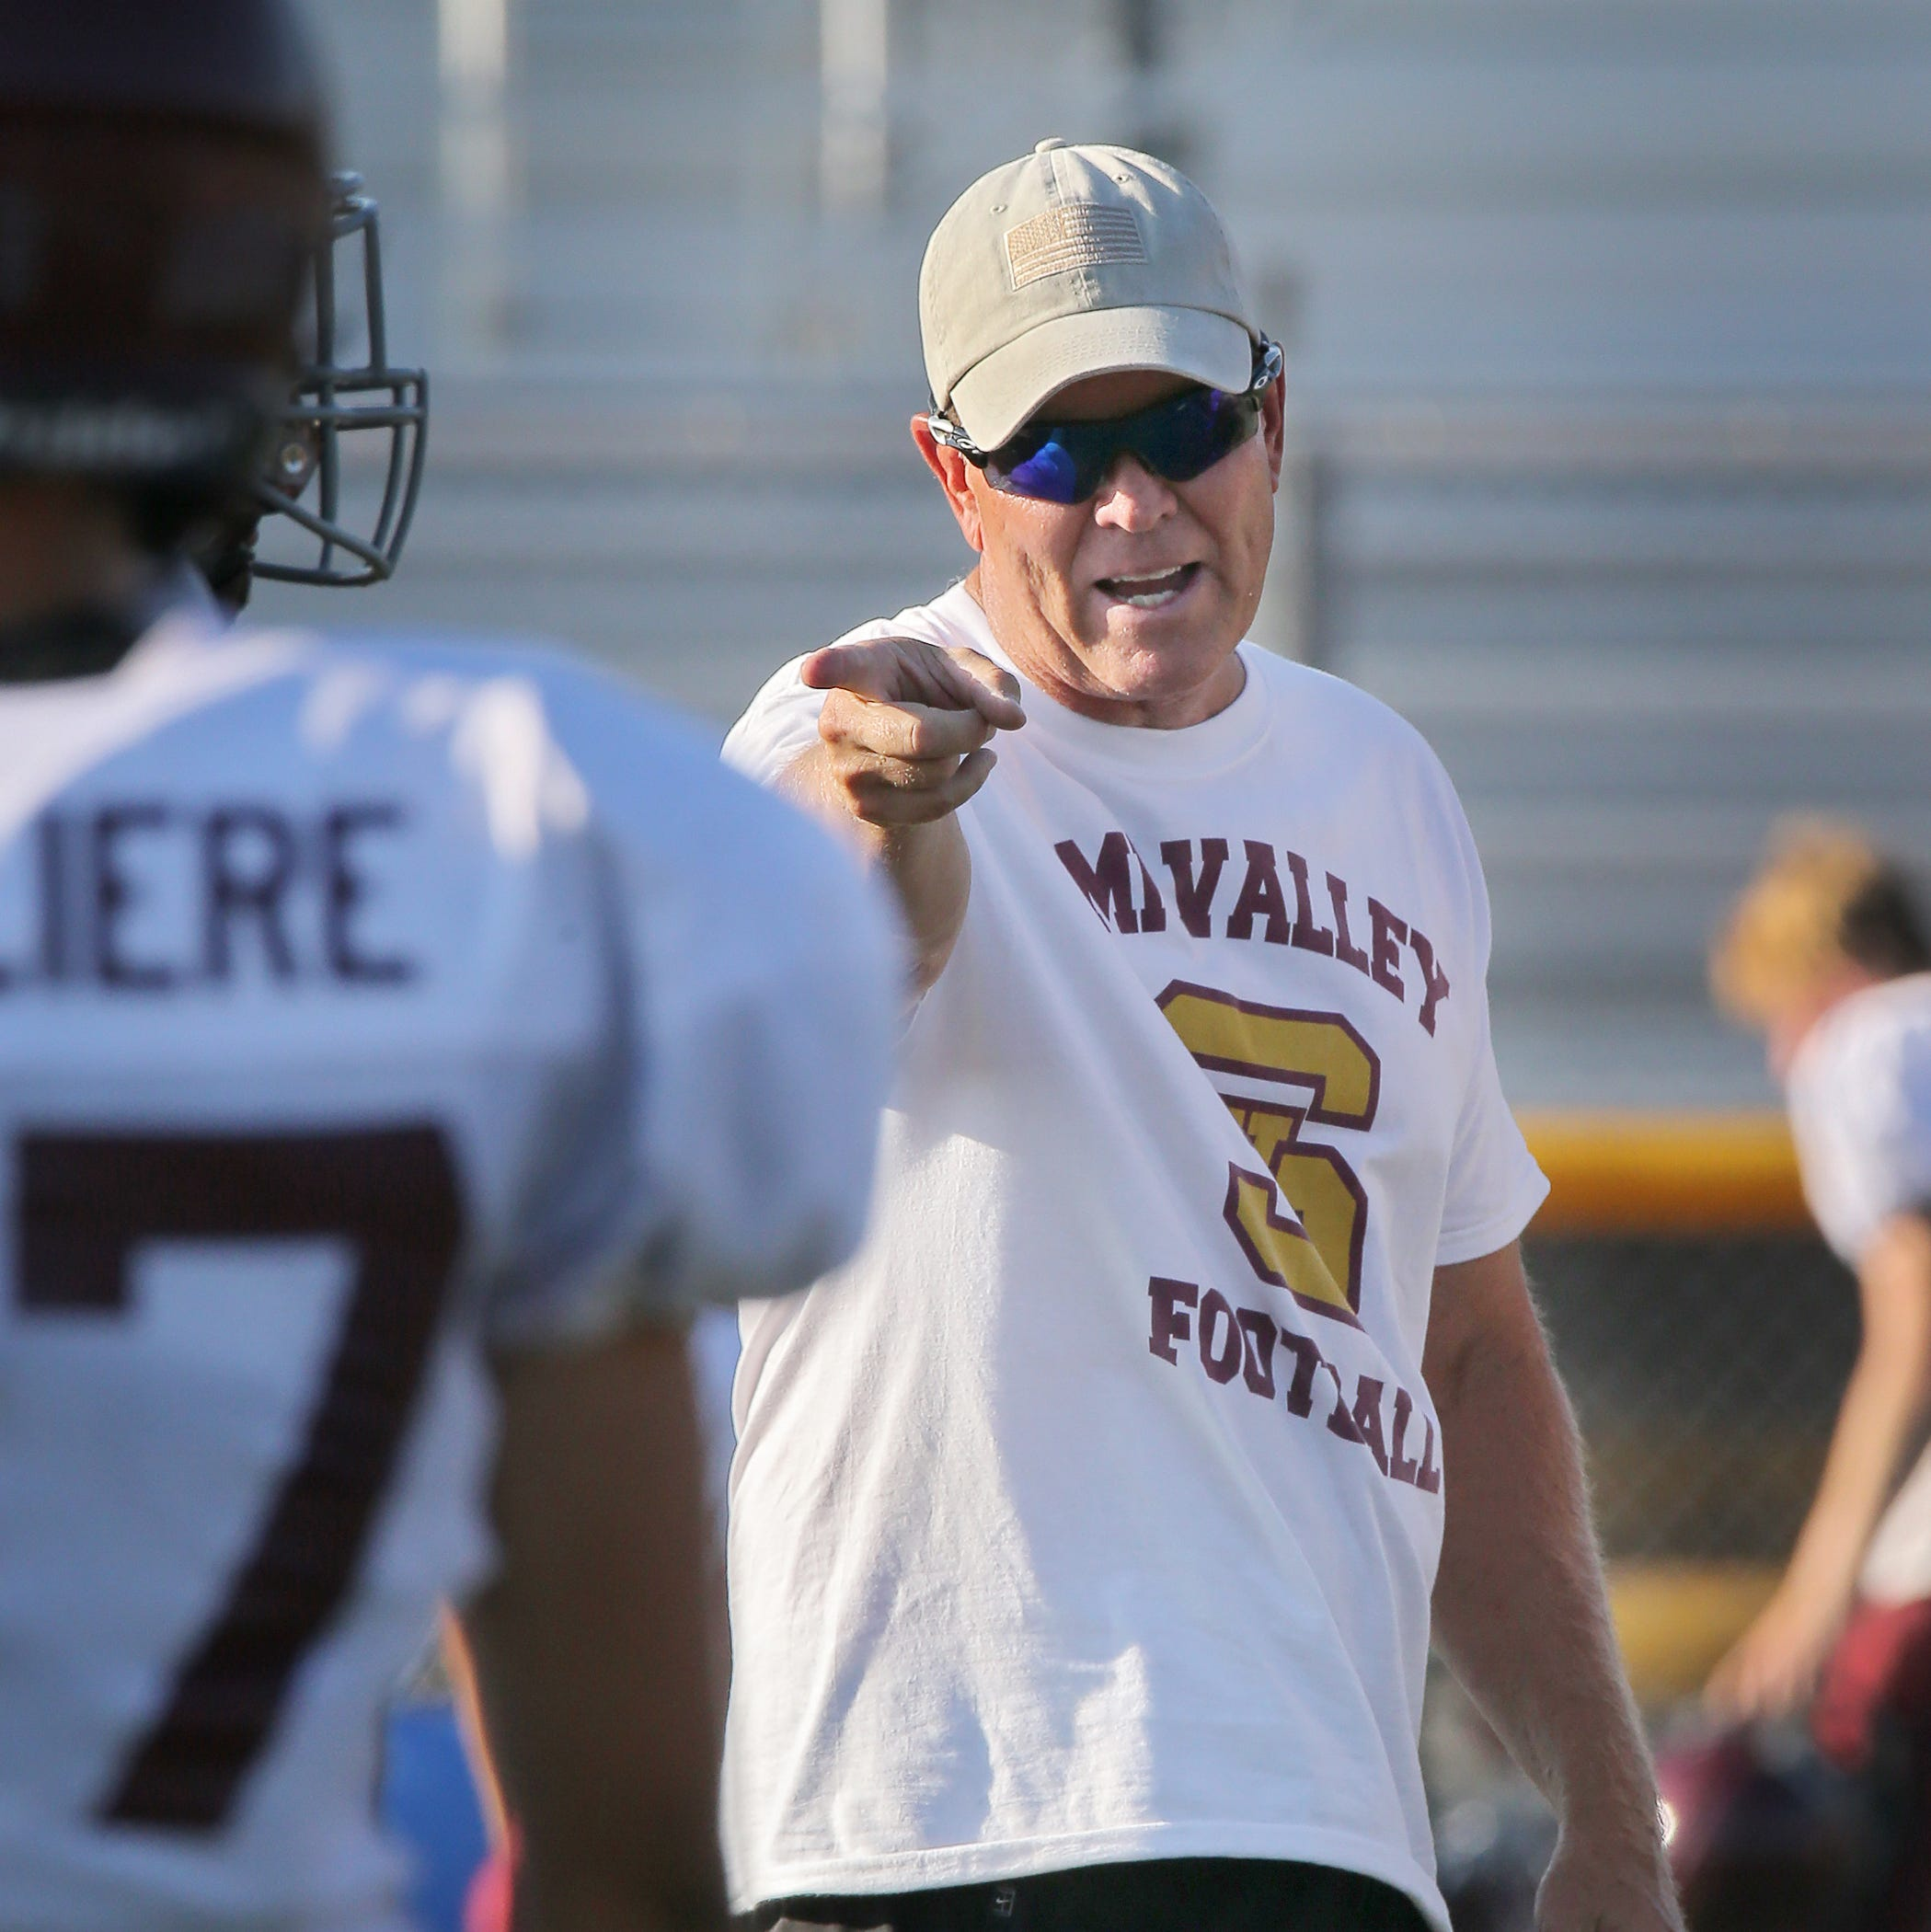 Simi Valley shows some fight in loss to Div. 3 Lompoc in Benkert's debut as coach